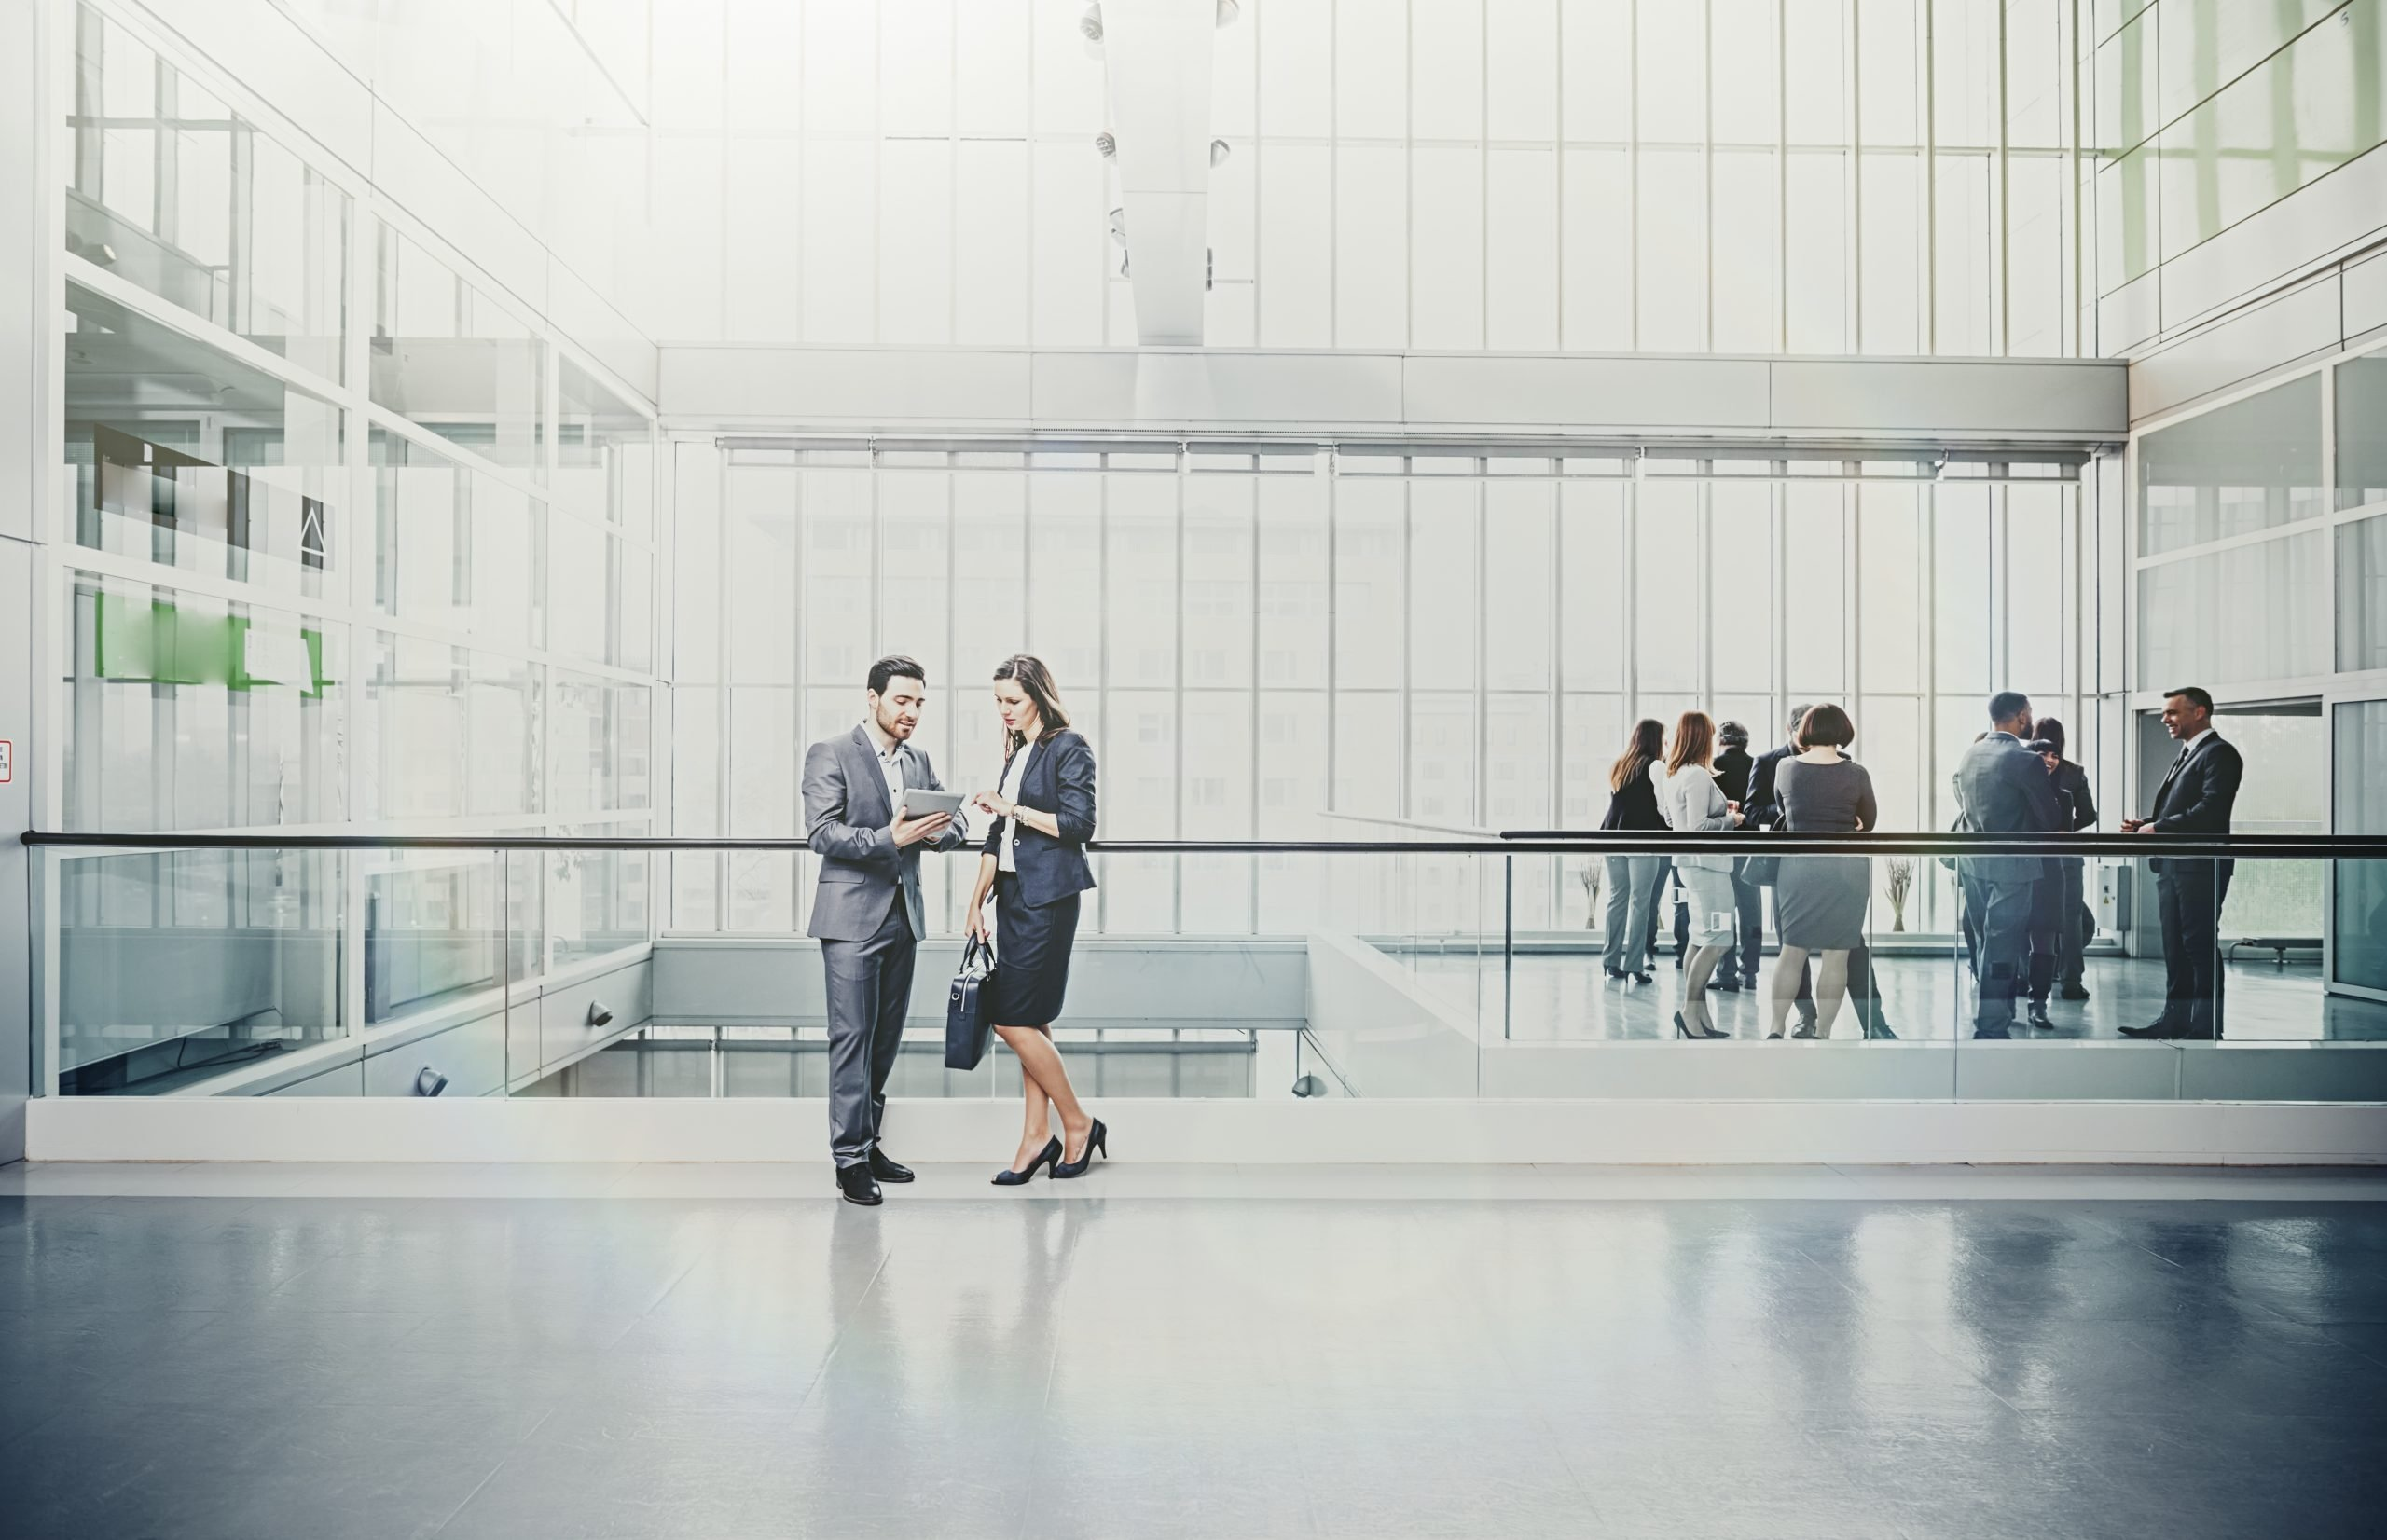 Preferred Tenant Amenities in the Commercial Real Estate Space